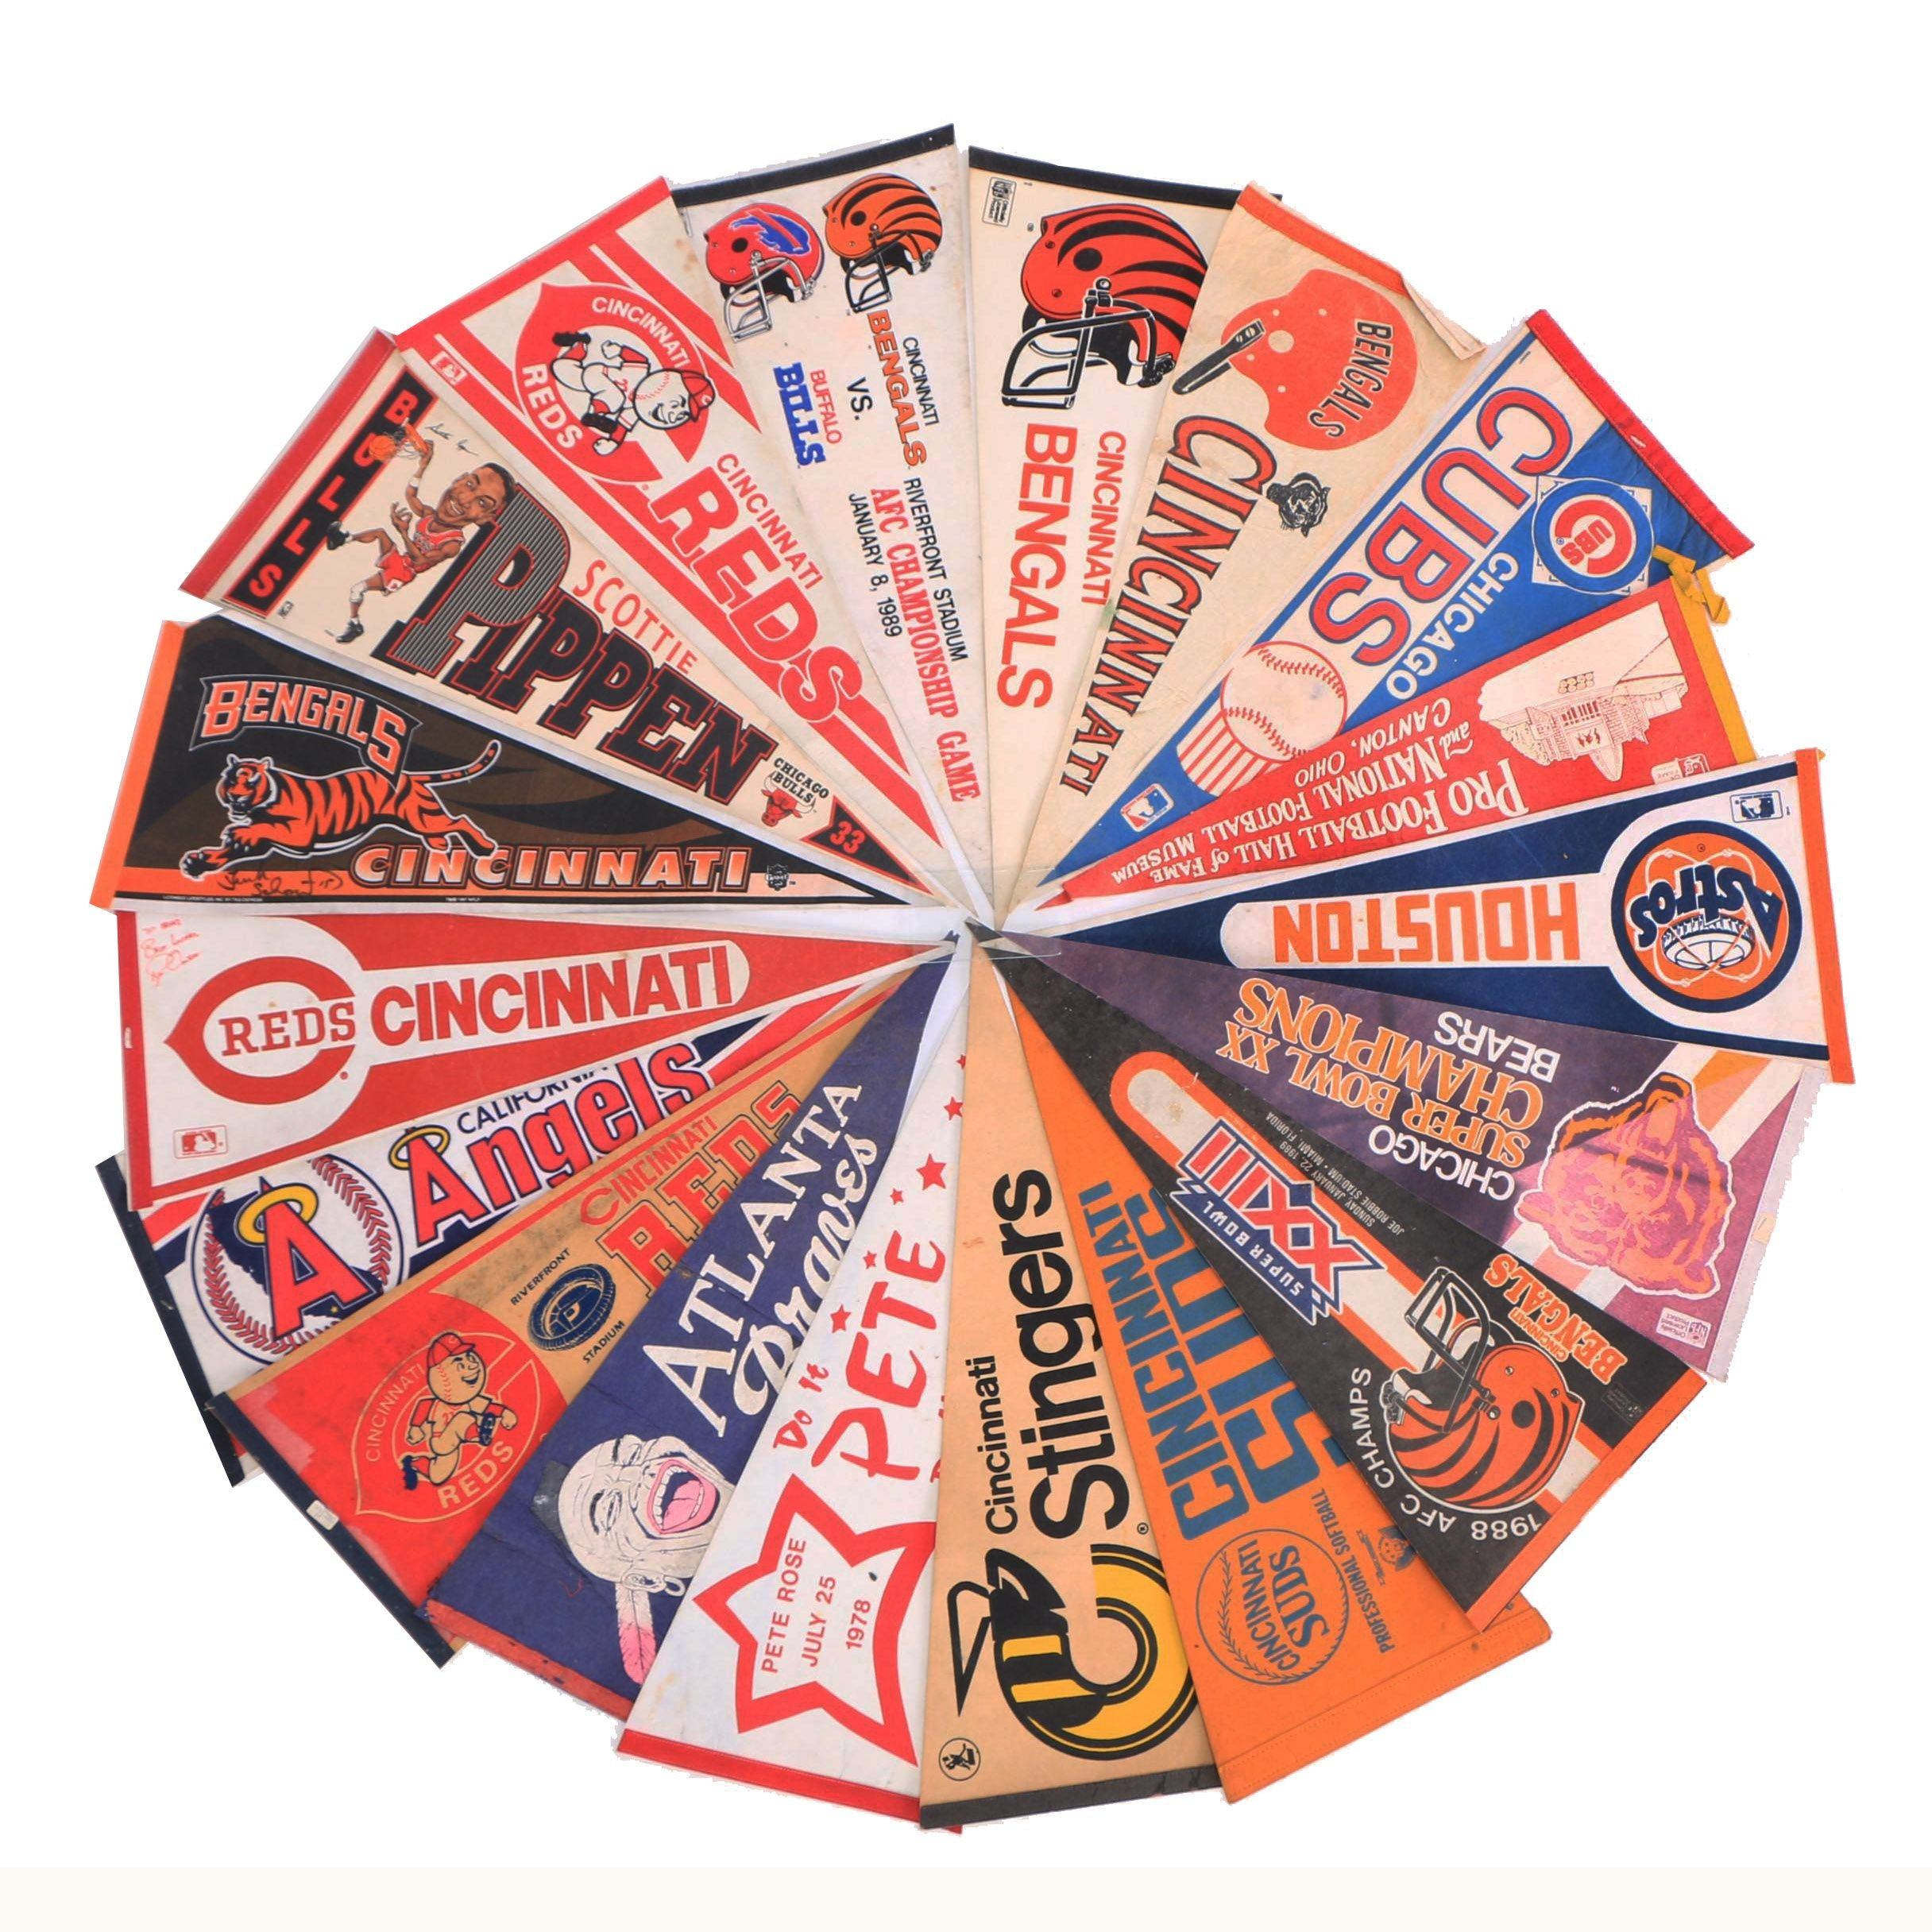 Vintage Bengals, Reds, Cubs, Astros and Other Sports Pennants